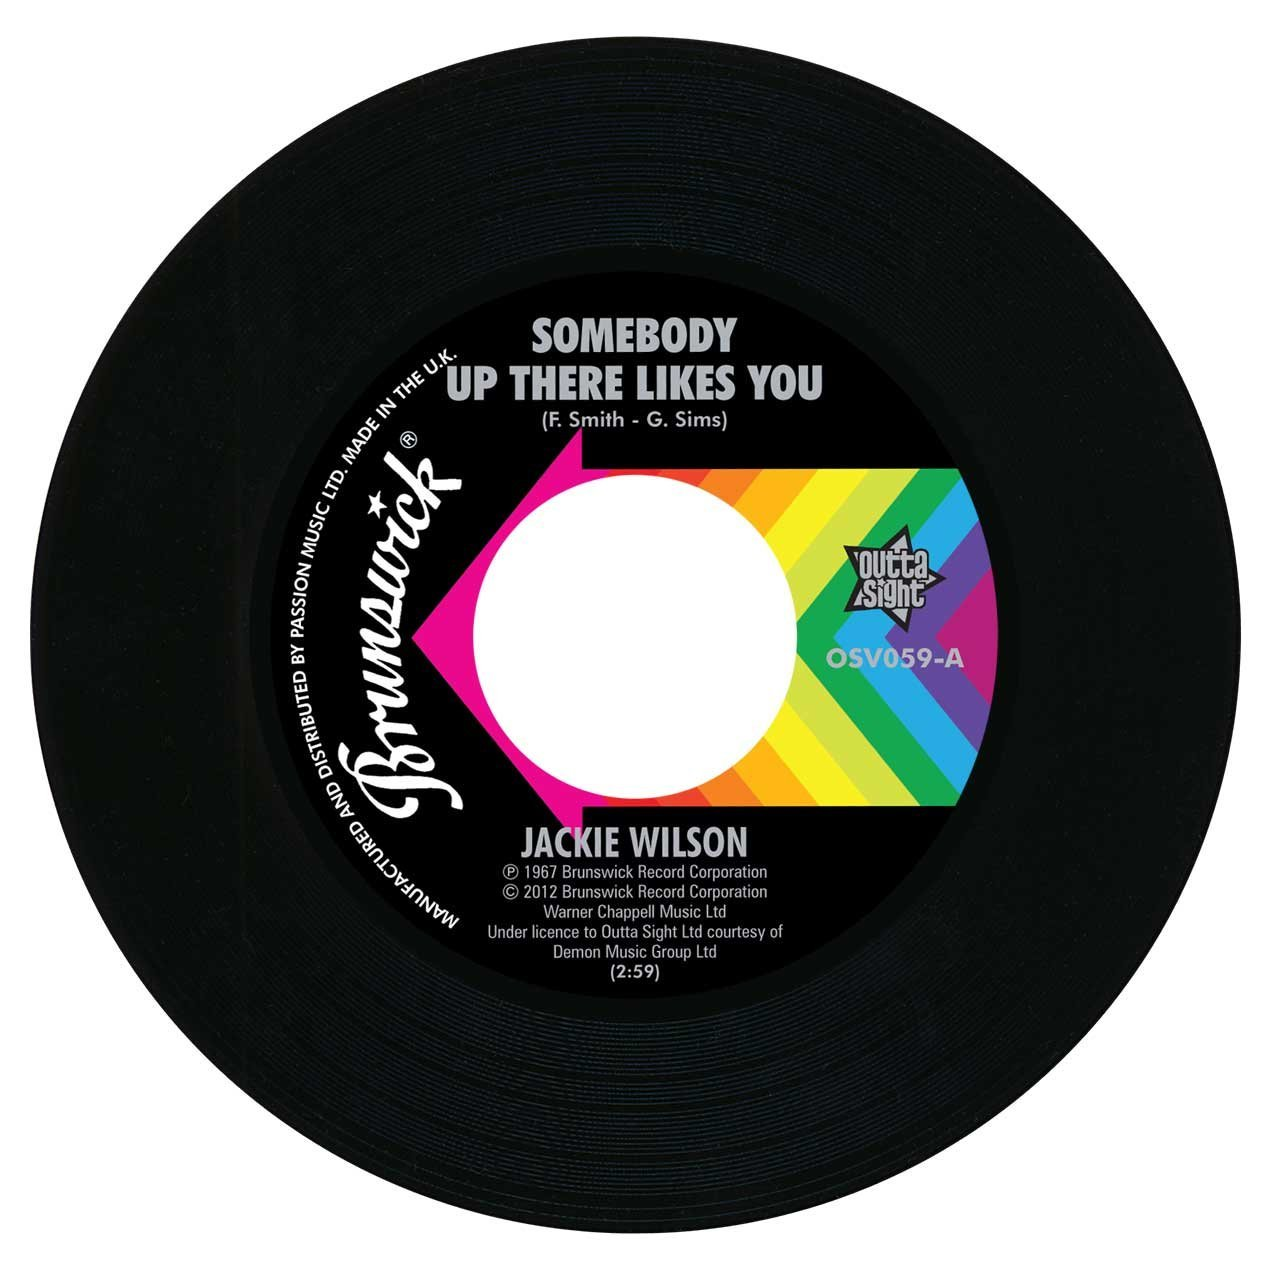 Jackie Wilson – Somebody Up There Likes You / A Lovely Way To Die 45 (Outta Sight) 7″ Vinyl